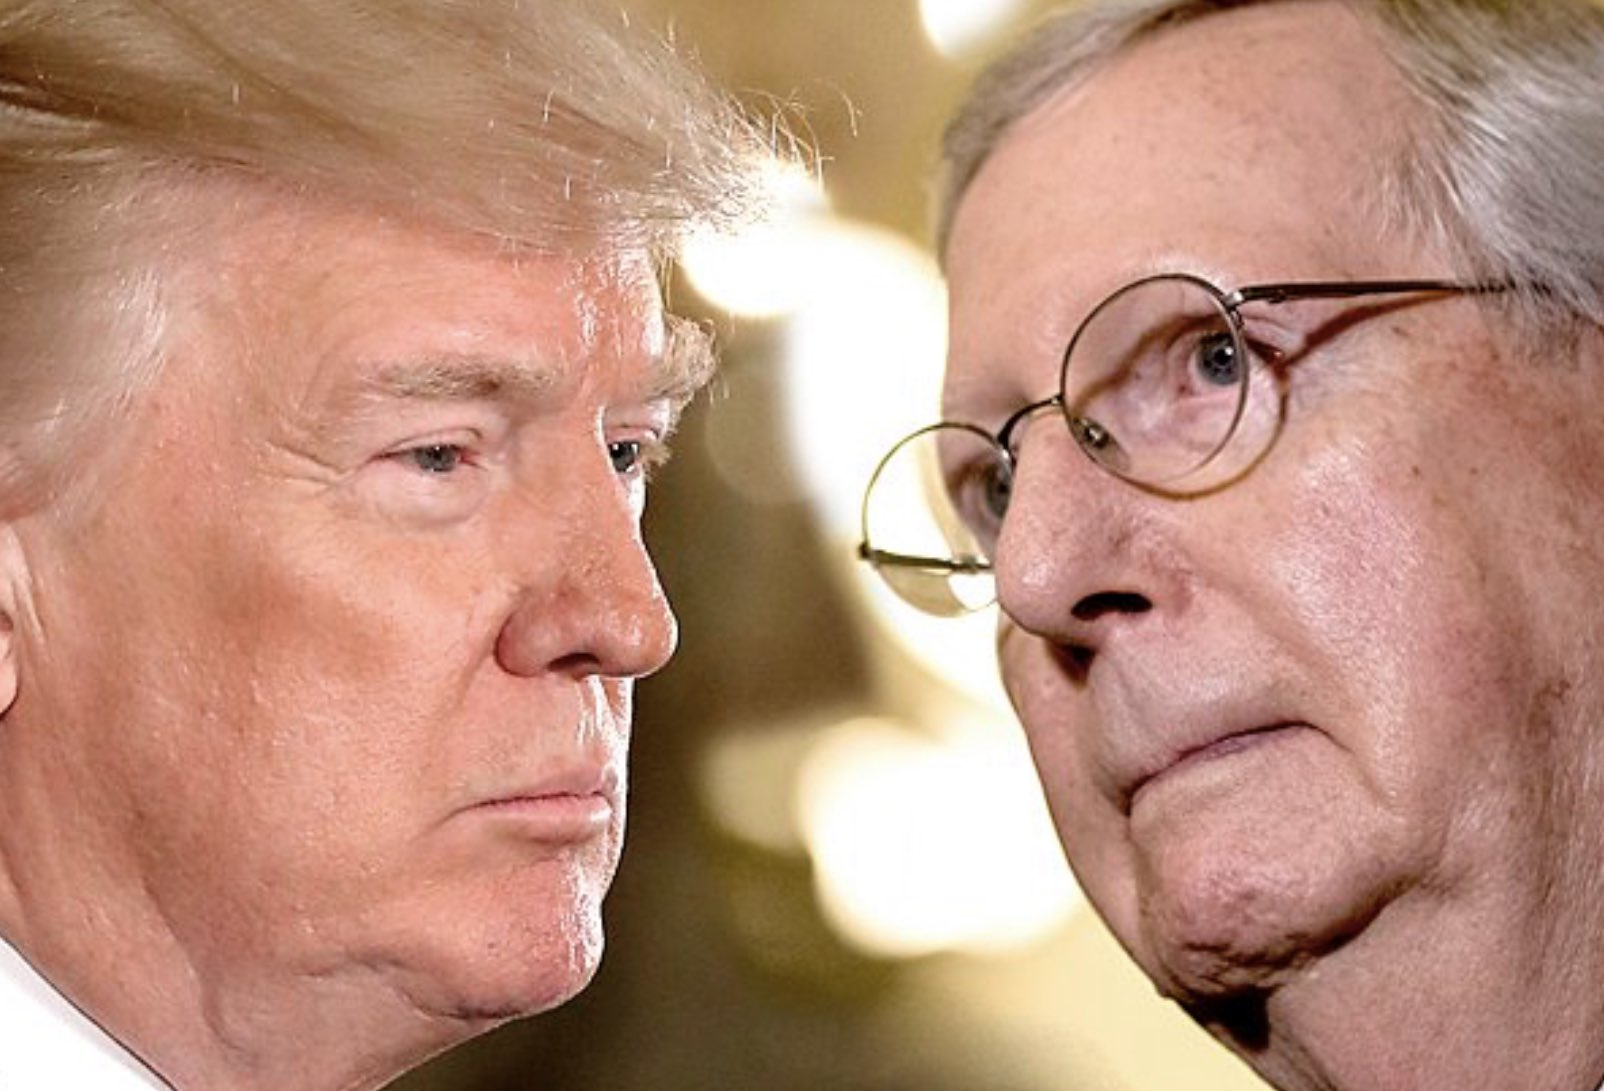 Mitch McConnell Photo,Mitch McConnell Twitter Trend : Most Popular Tweets